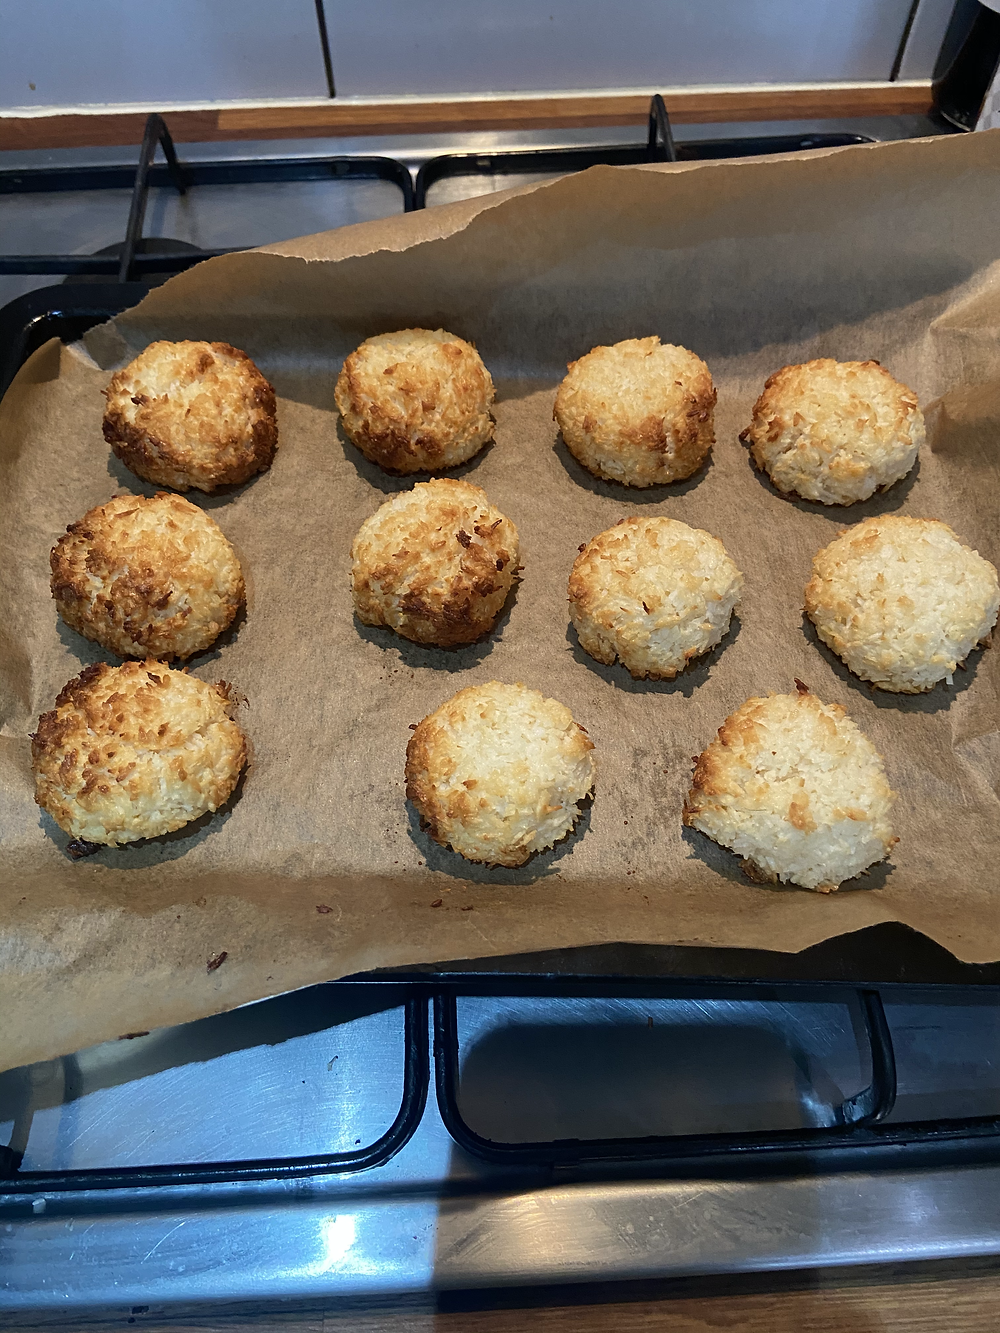 Freshly baked golden coconut macaroons straight out of the oven